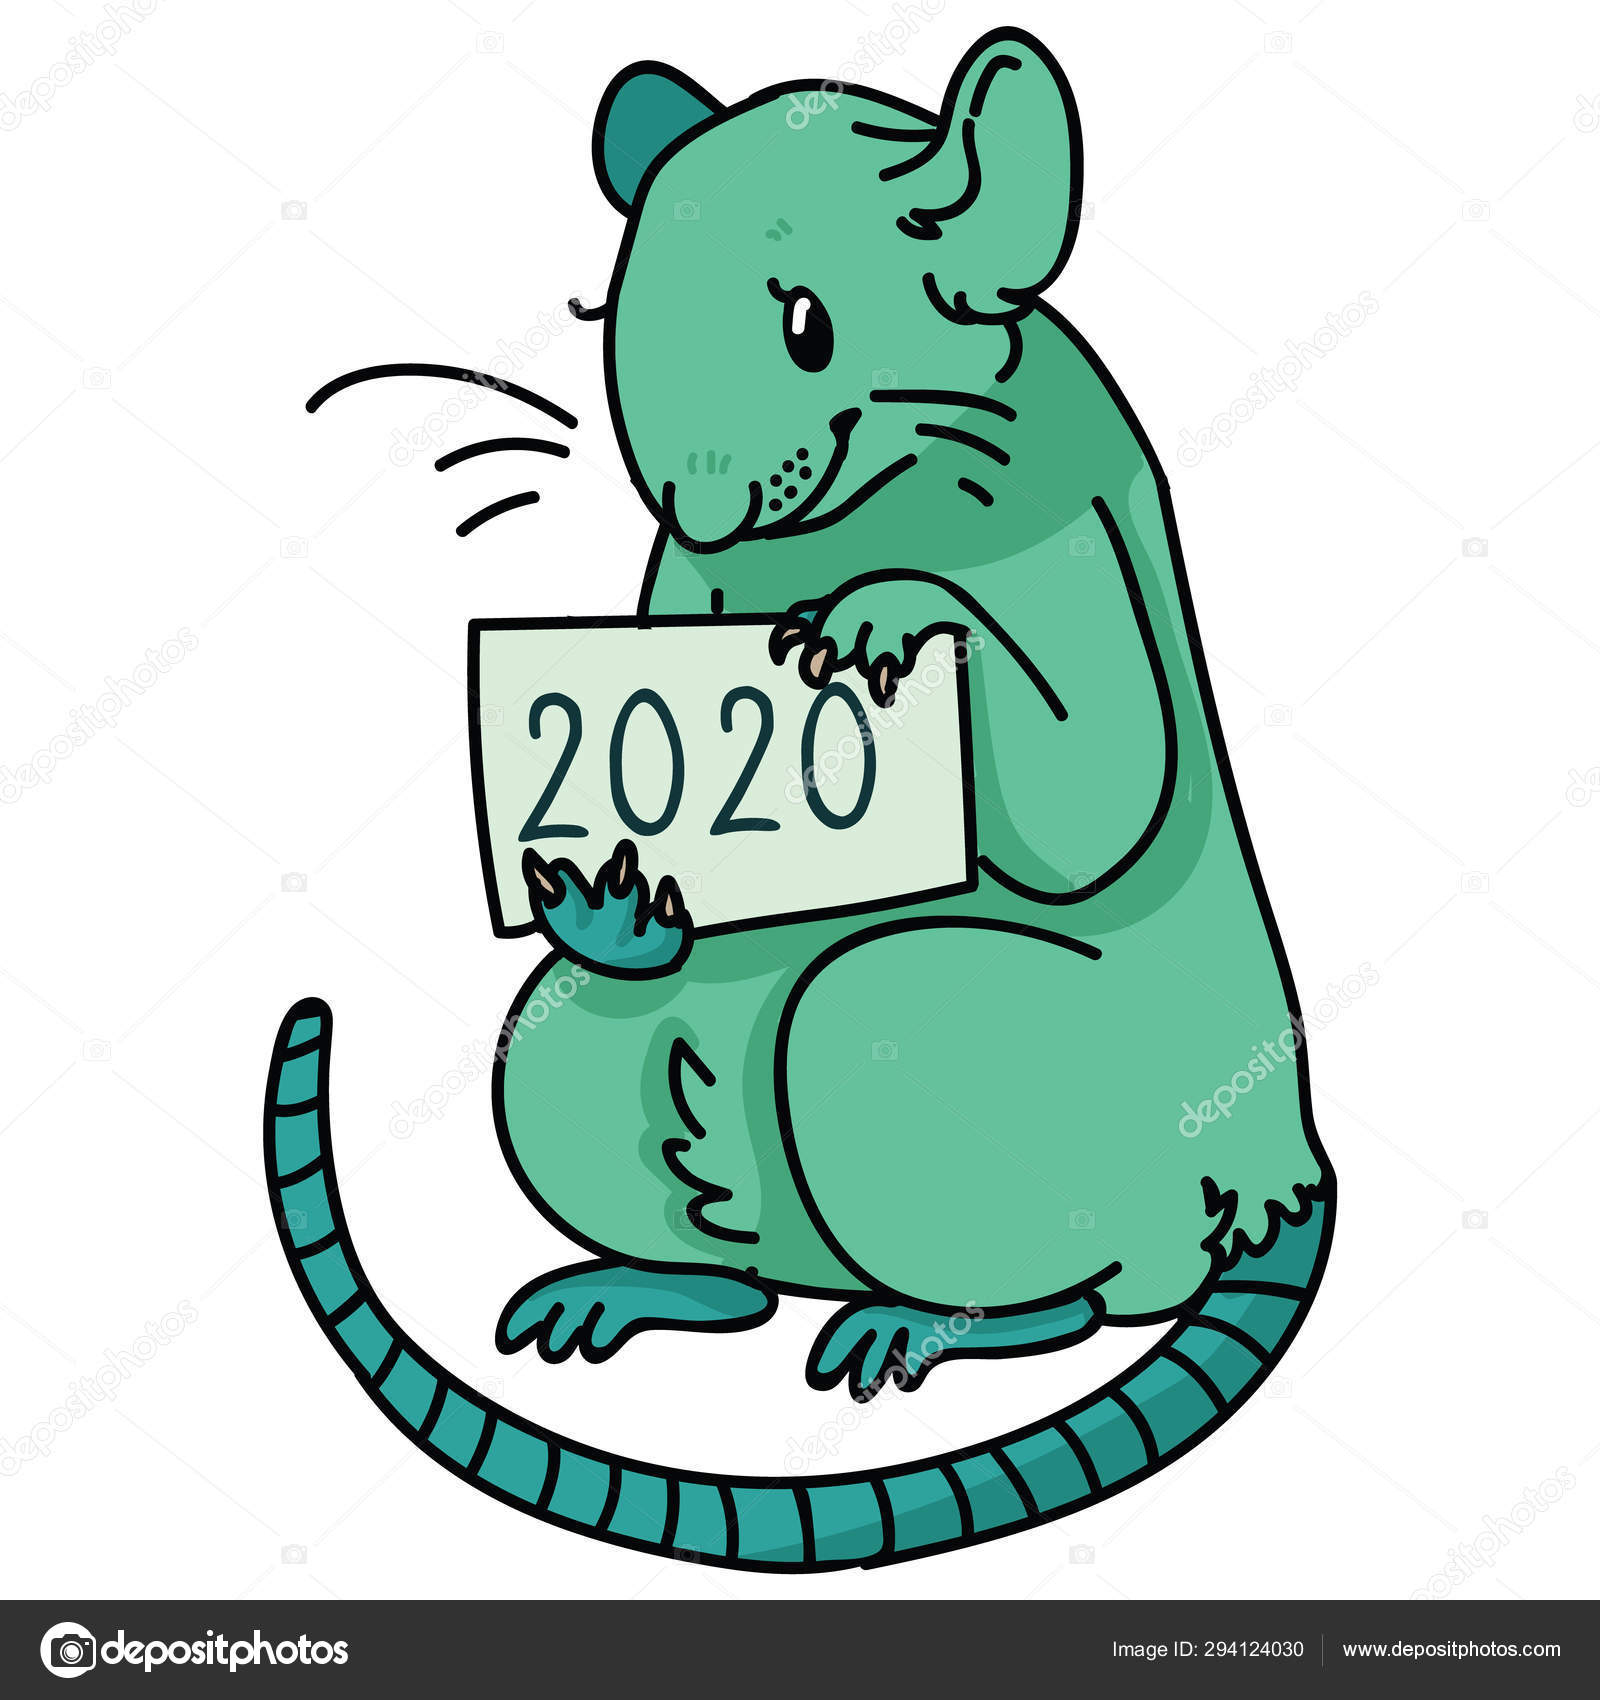 neo mint green 2020 rat vector illustration chinese happy new year clipart stock vector c limolidastudio gmail com 294124030 neo mint green 2020 rat vector illustration chinese happy new year clipart stock vector c limolidastudio gmail com 294124030